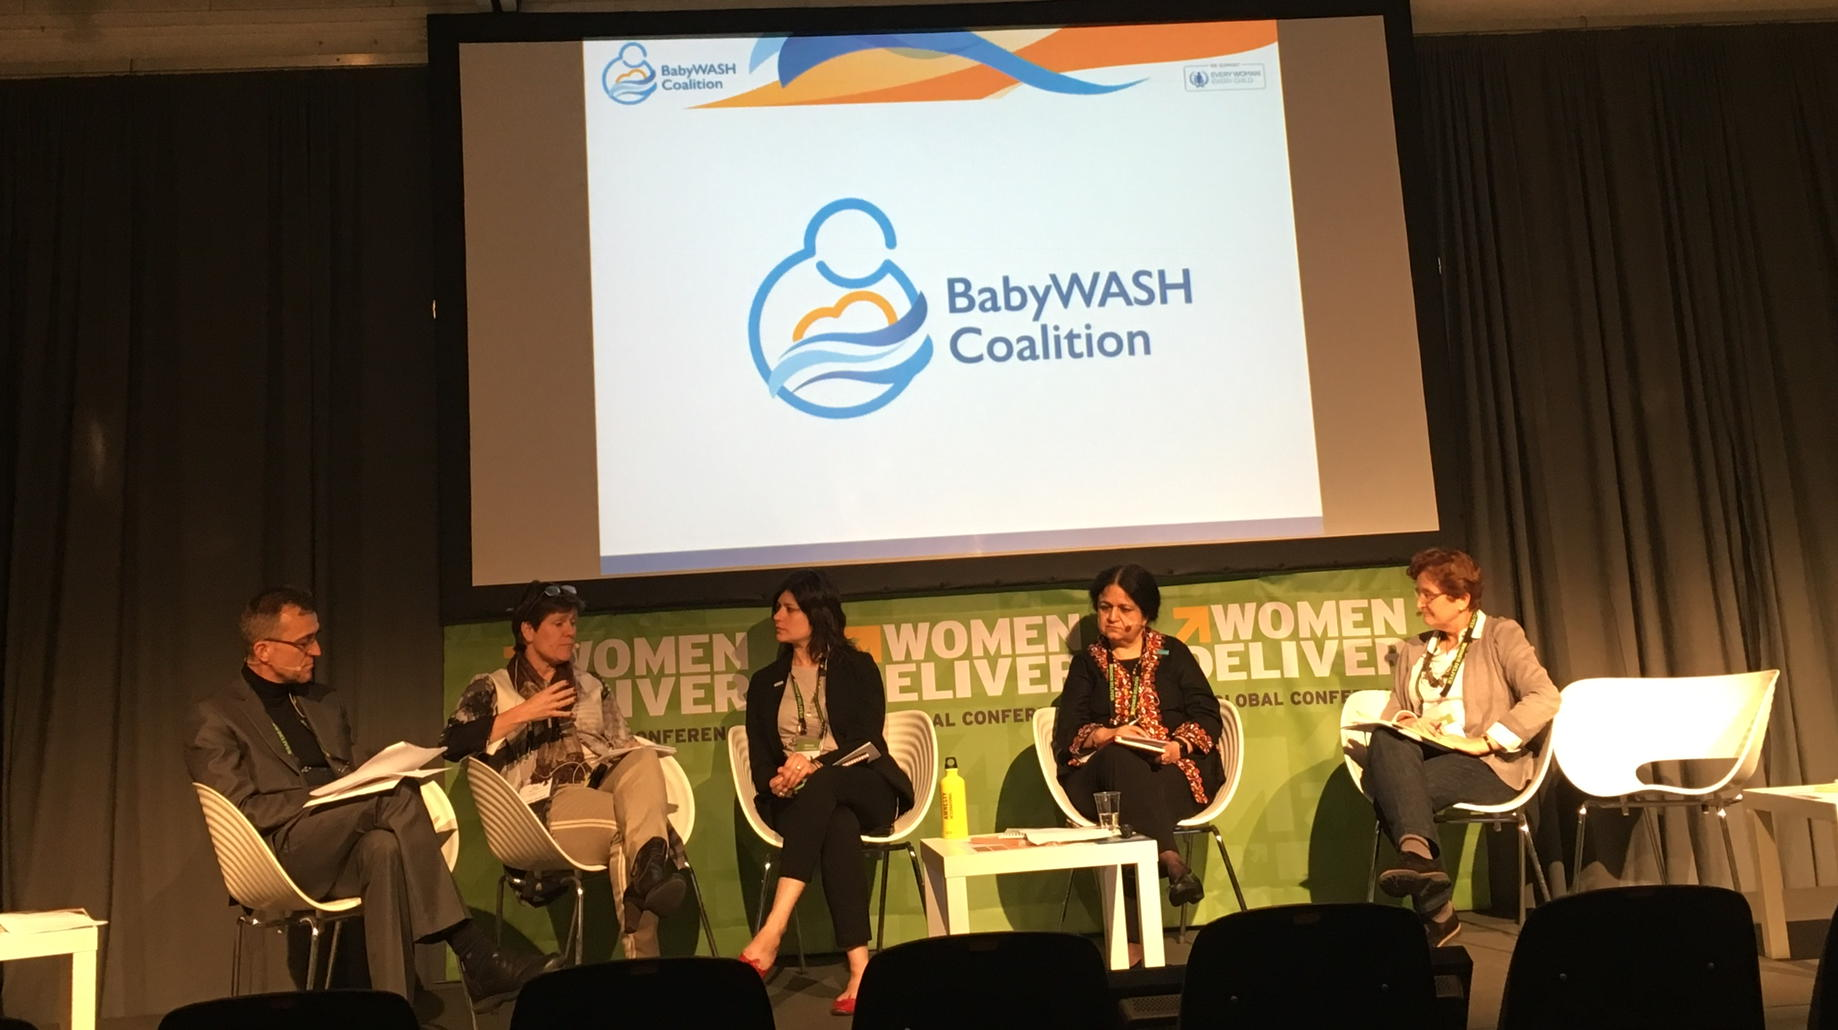 Taking baby steps for big impact to end child stunting. The silo-busting BabyWASH coalition at #WD2016 https://t.co/0T5jAr1YW1